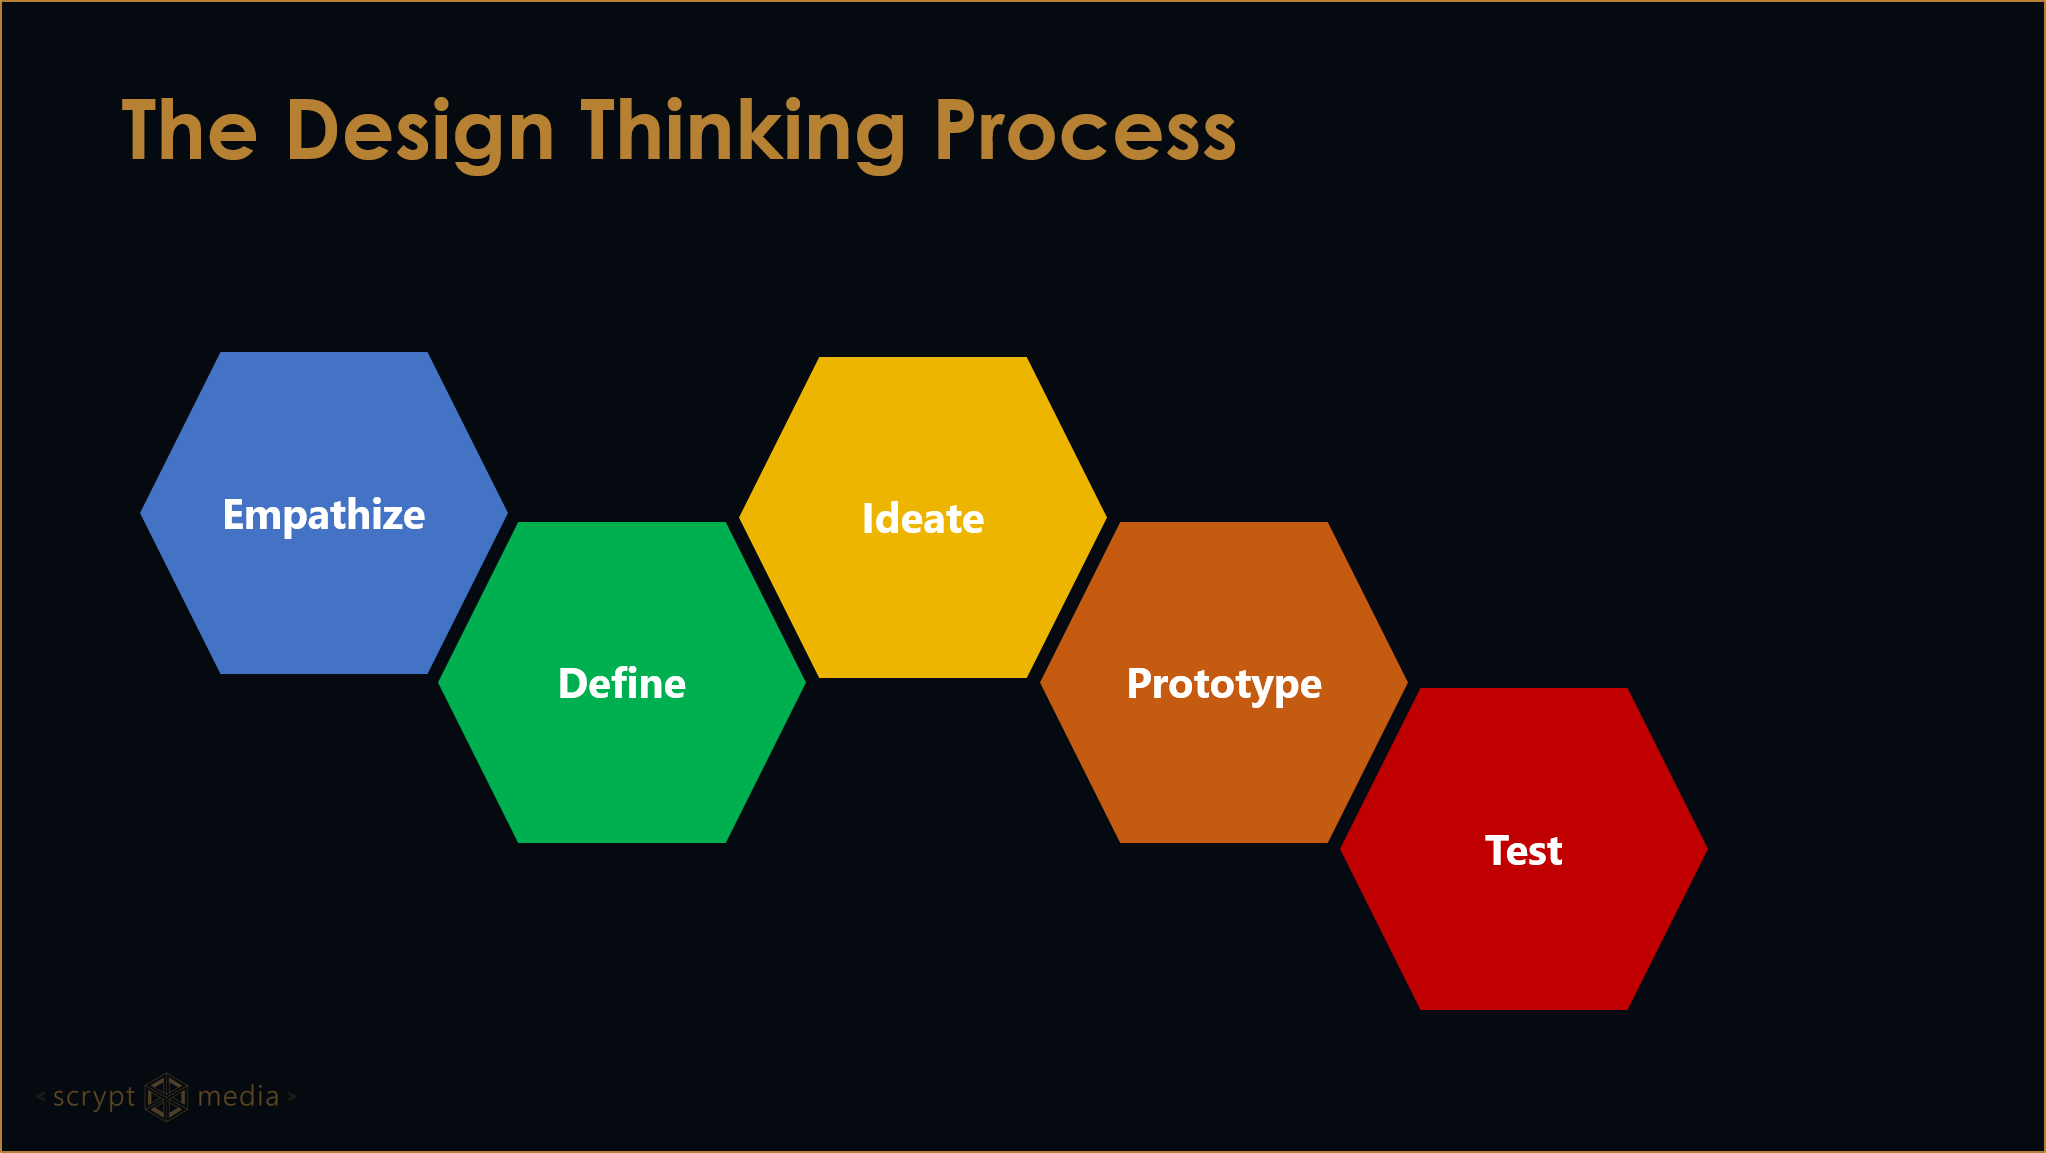 The steps of the Design Thinking Process